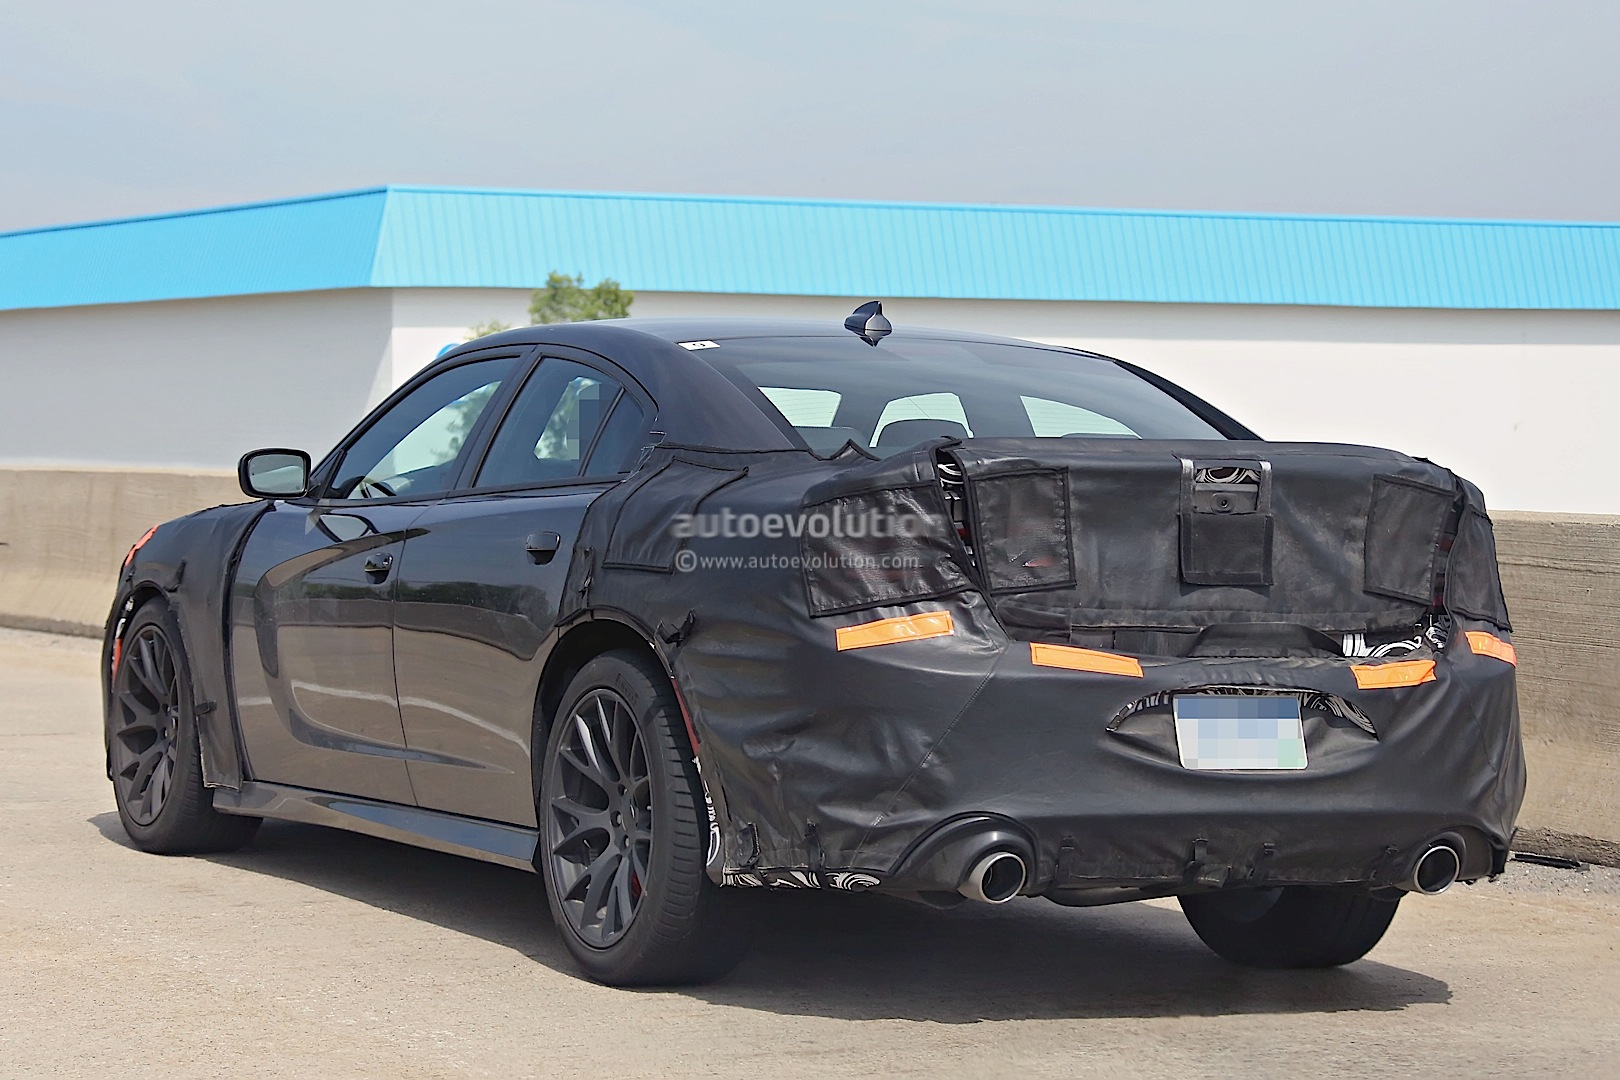 2015 Dodge Charger SRT Hellcat - Photo #6